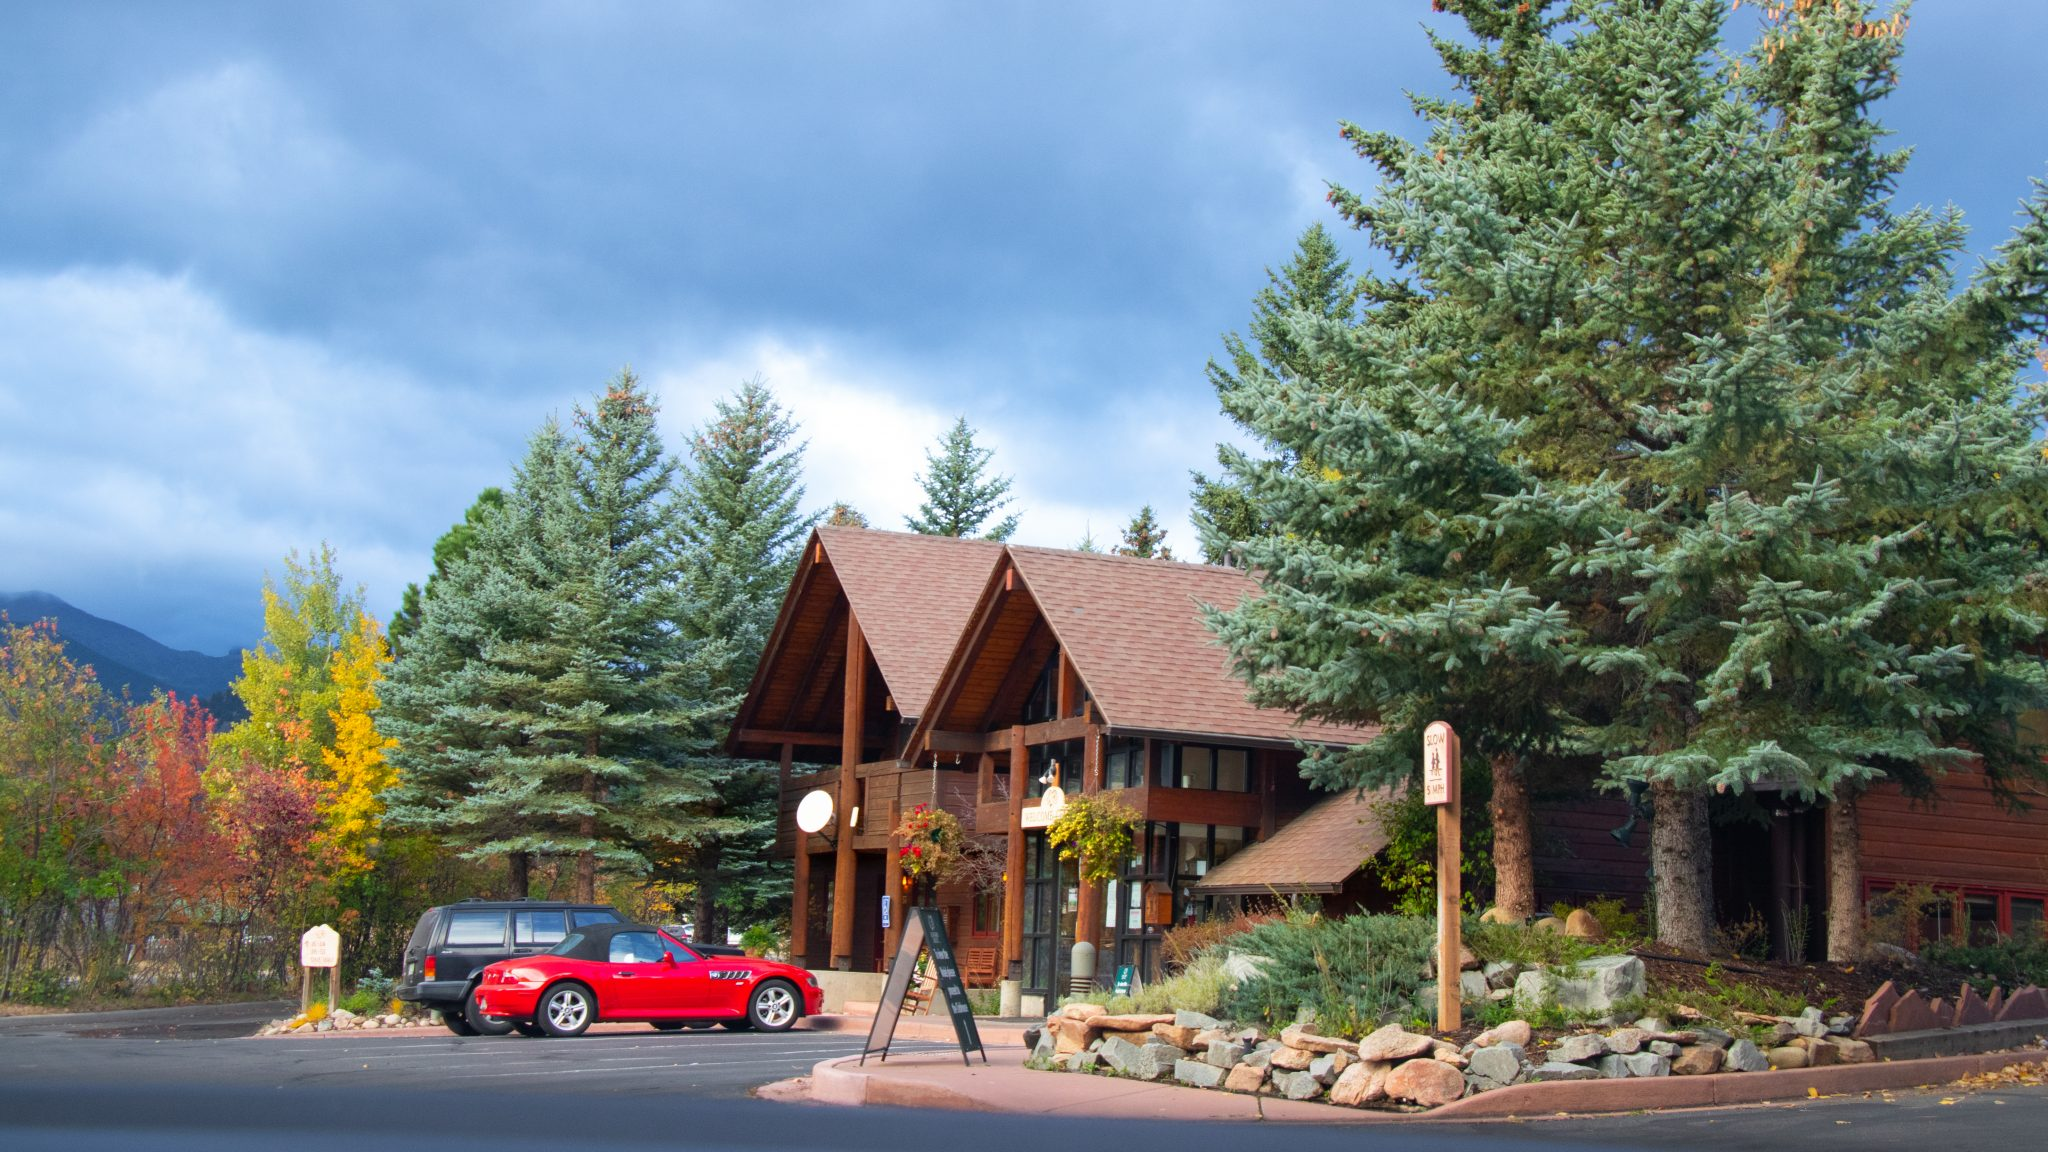 Rams Horn Village Resort - A home away from home!